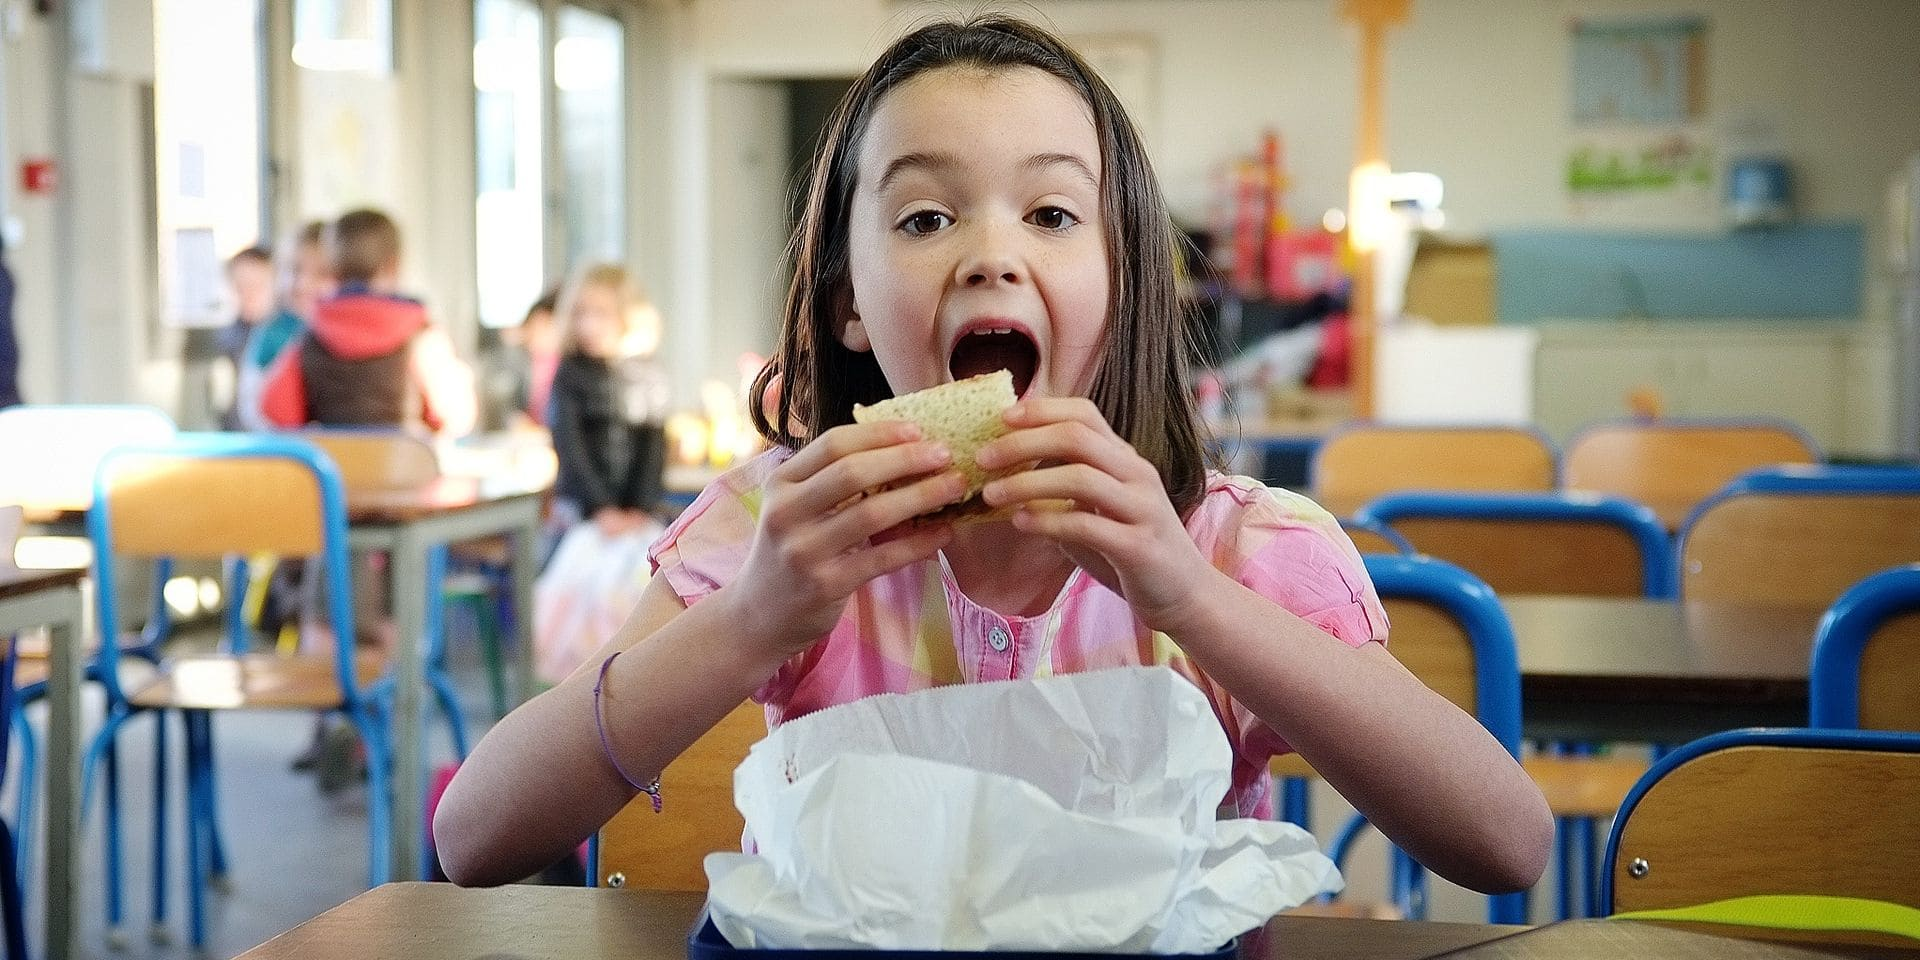 MODEL RELEASE 20150419 - BRUSSELS, BELGIUM: Illustration picture shows a girl eating bread from her lunch box at school, Sunday 19 April 2015 in Namur. BELGA PHOTO BRUNO FAHY